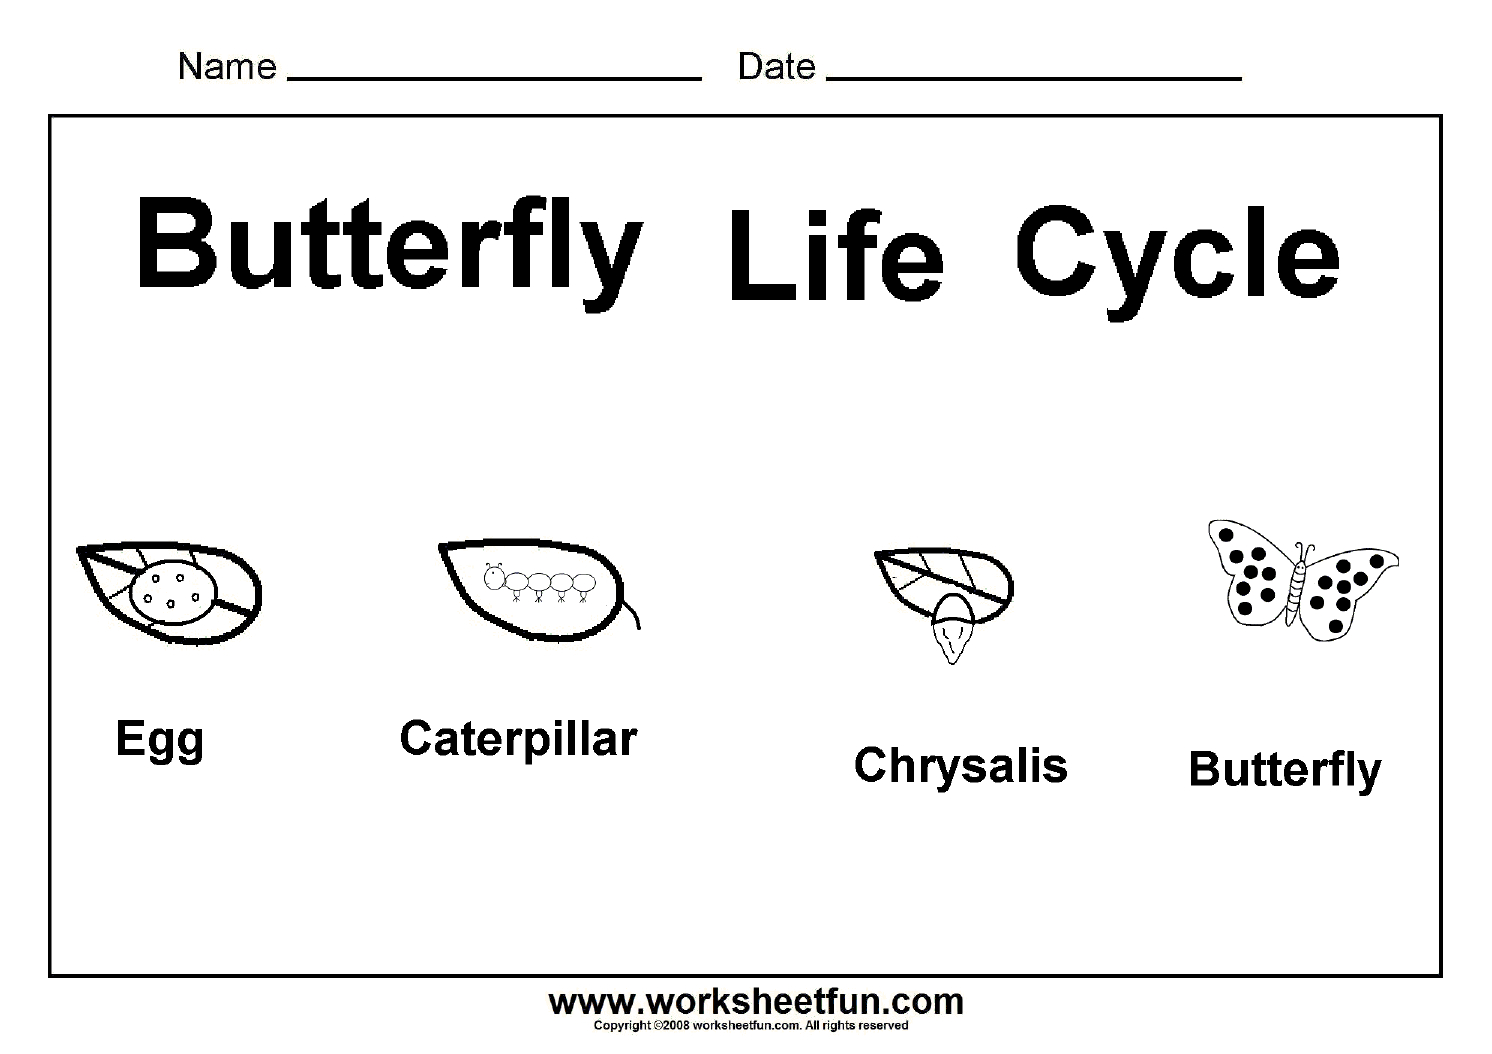 Worksheet : Butterfly Life Cycle One Free Printable Science - Free Printable Worksheets For Kids Science